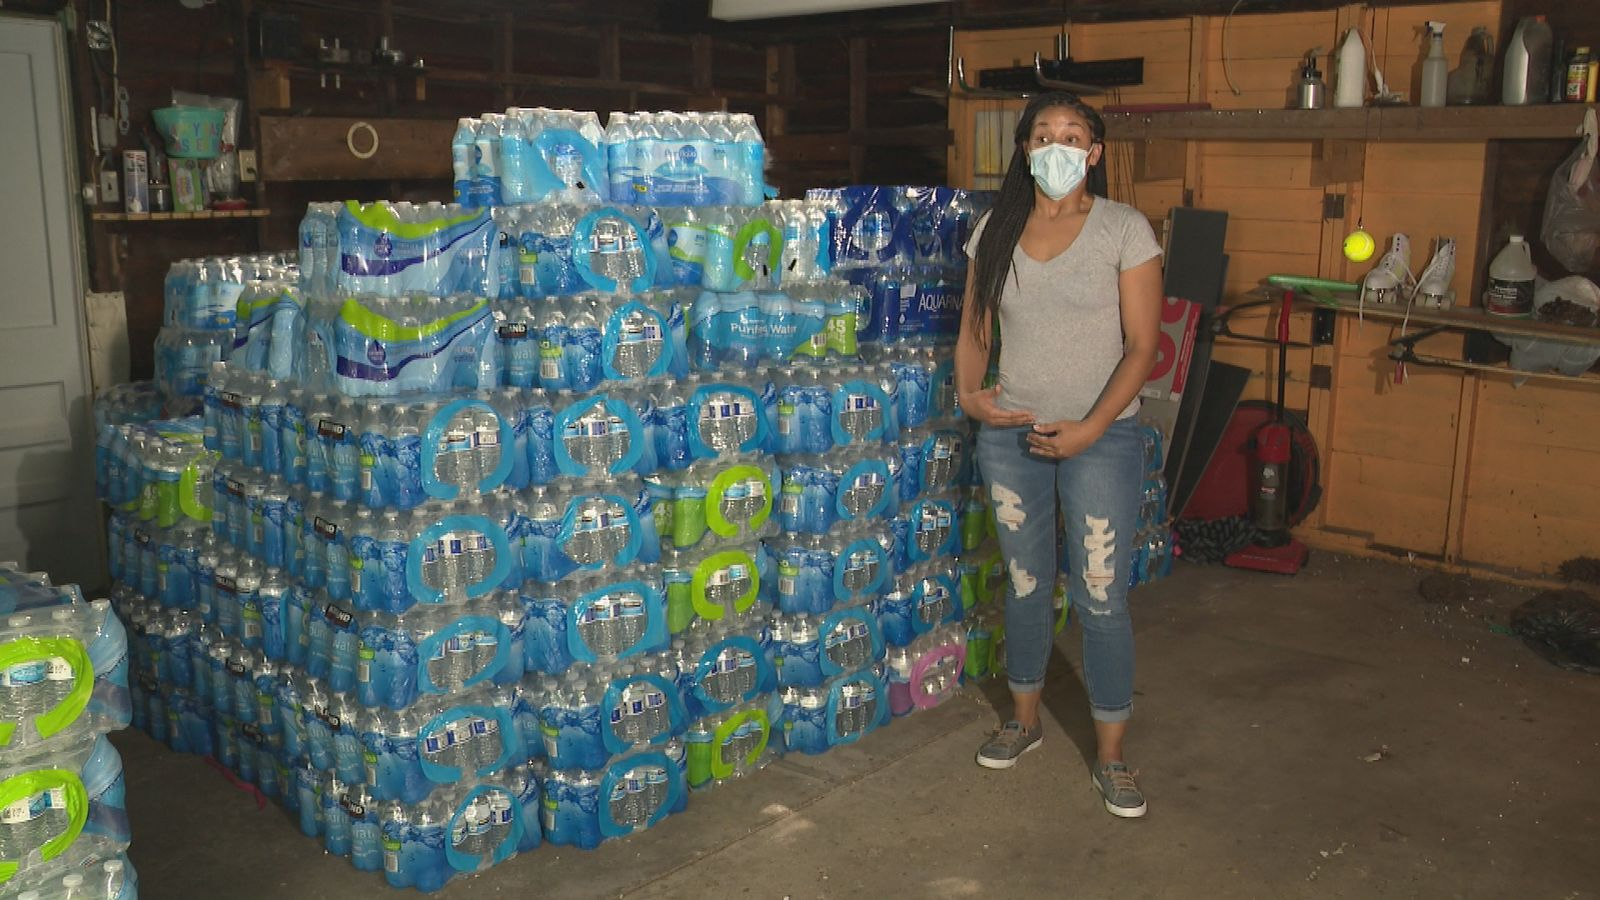 Tamara Custard, the CEO of Village in the Valley speaks to Newschannel 3 on Tuesday, July 27, 2020. Her plan to collect{ } water for Flint will then be followed by a campaign of creating more awareness of the water crisis. (WWMT/Jason Heeres)